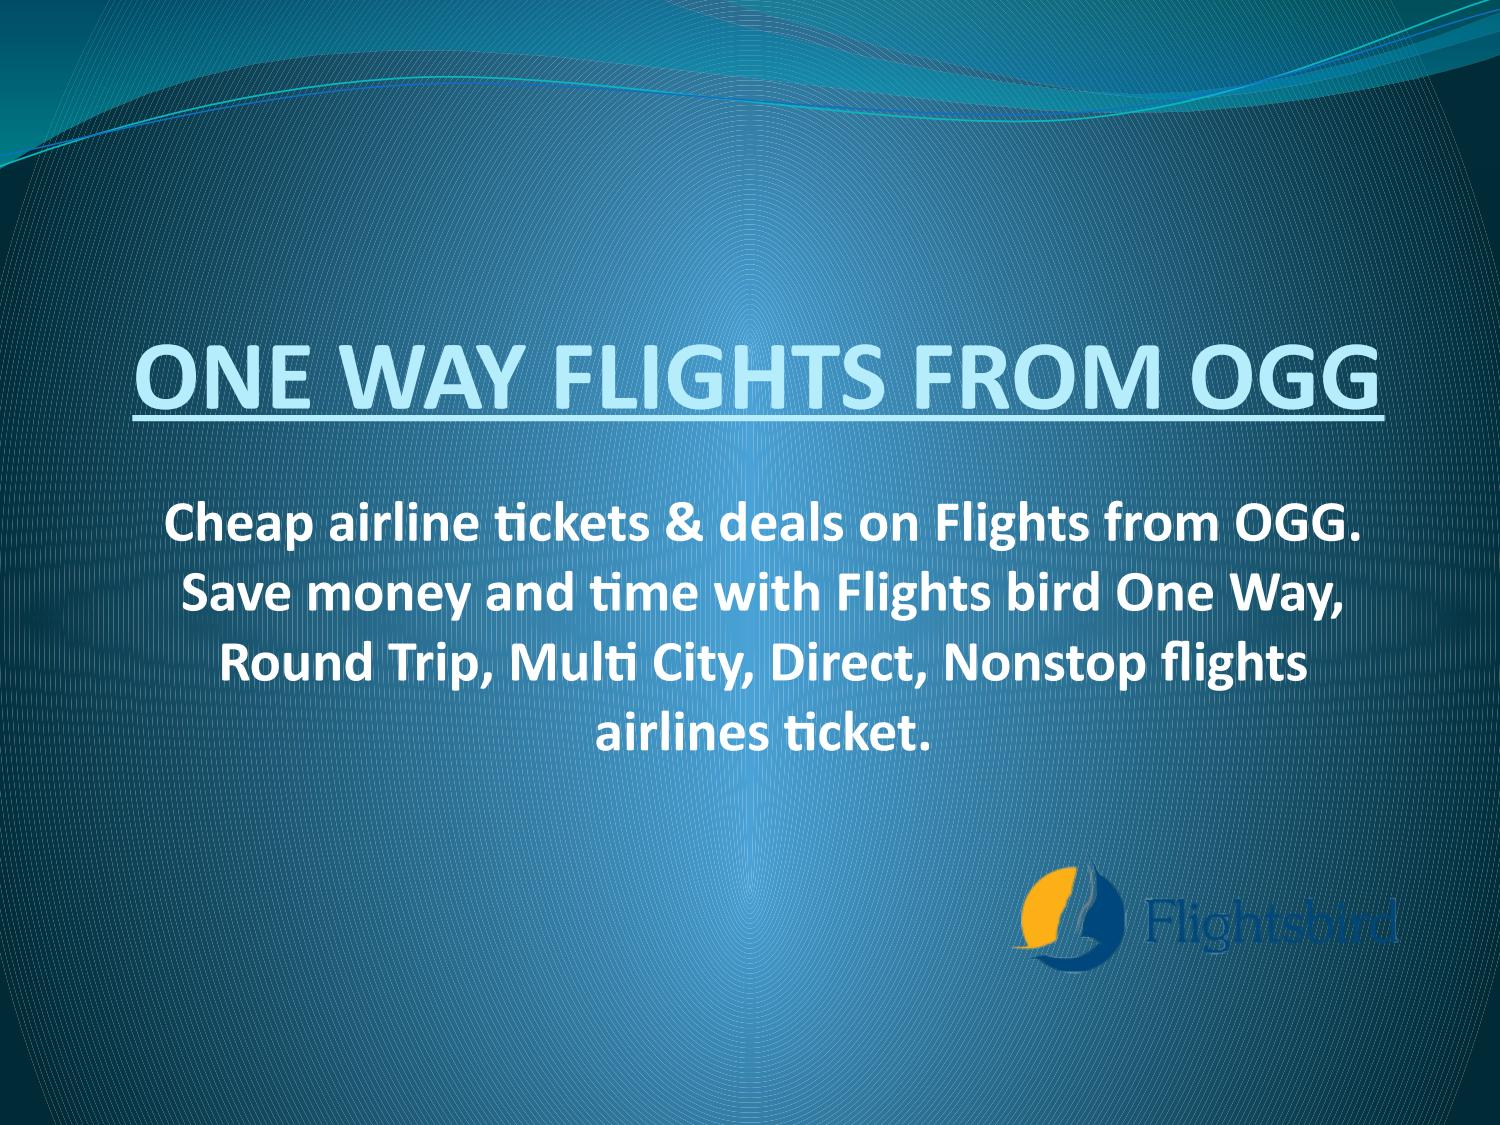 Cheap One Way Flights One Way Flights From Ogg By Williamarrison123 Issuu